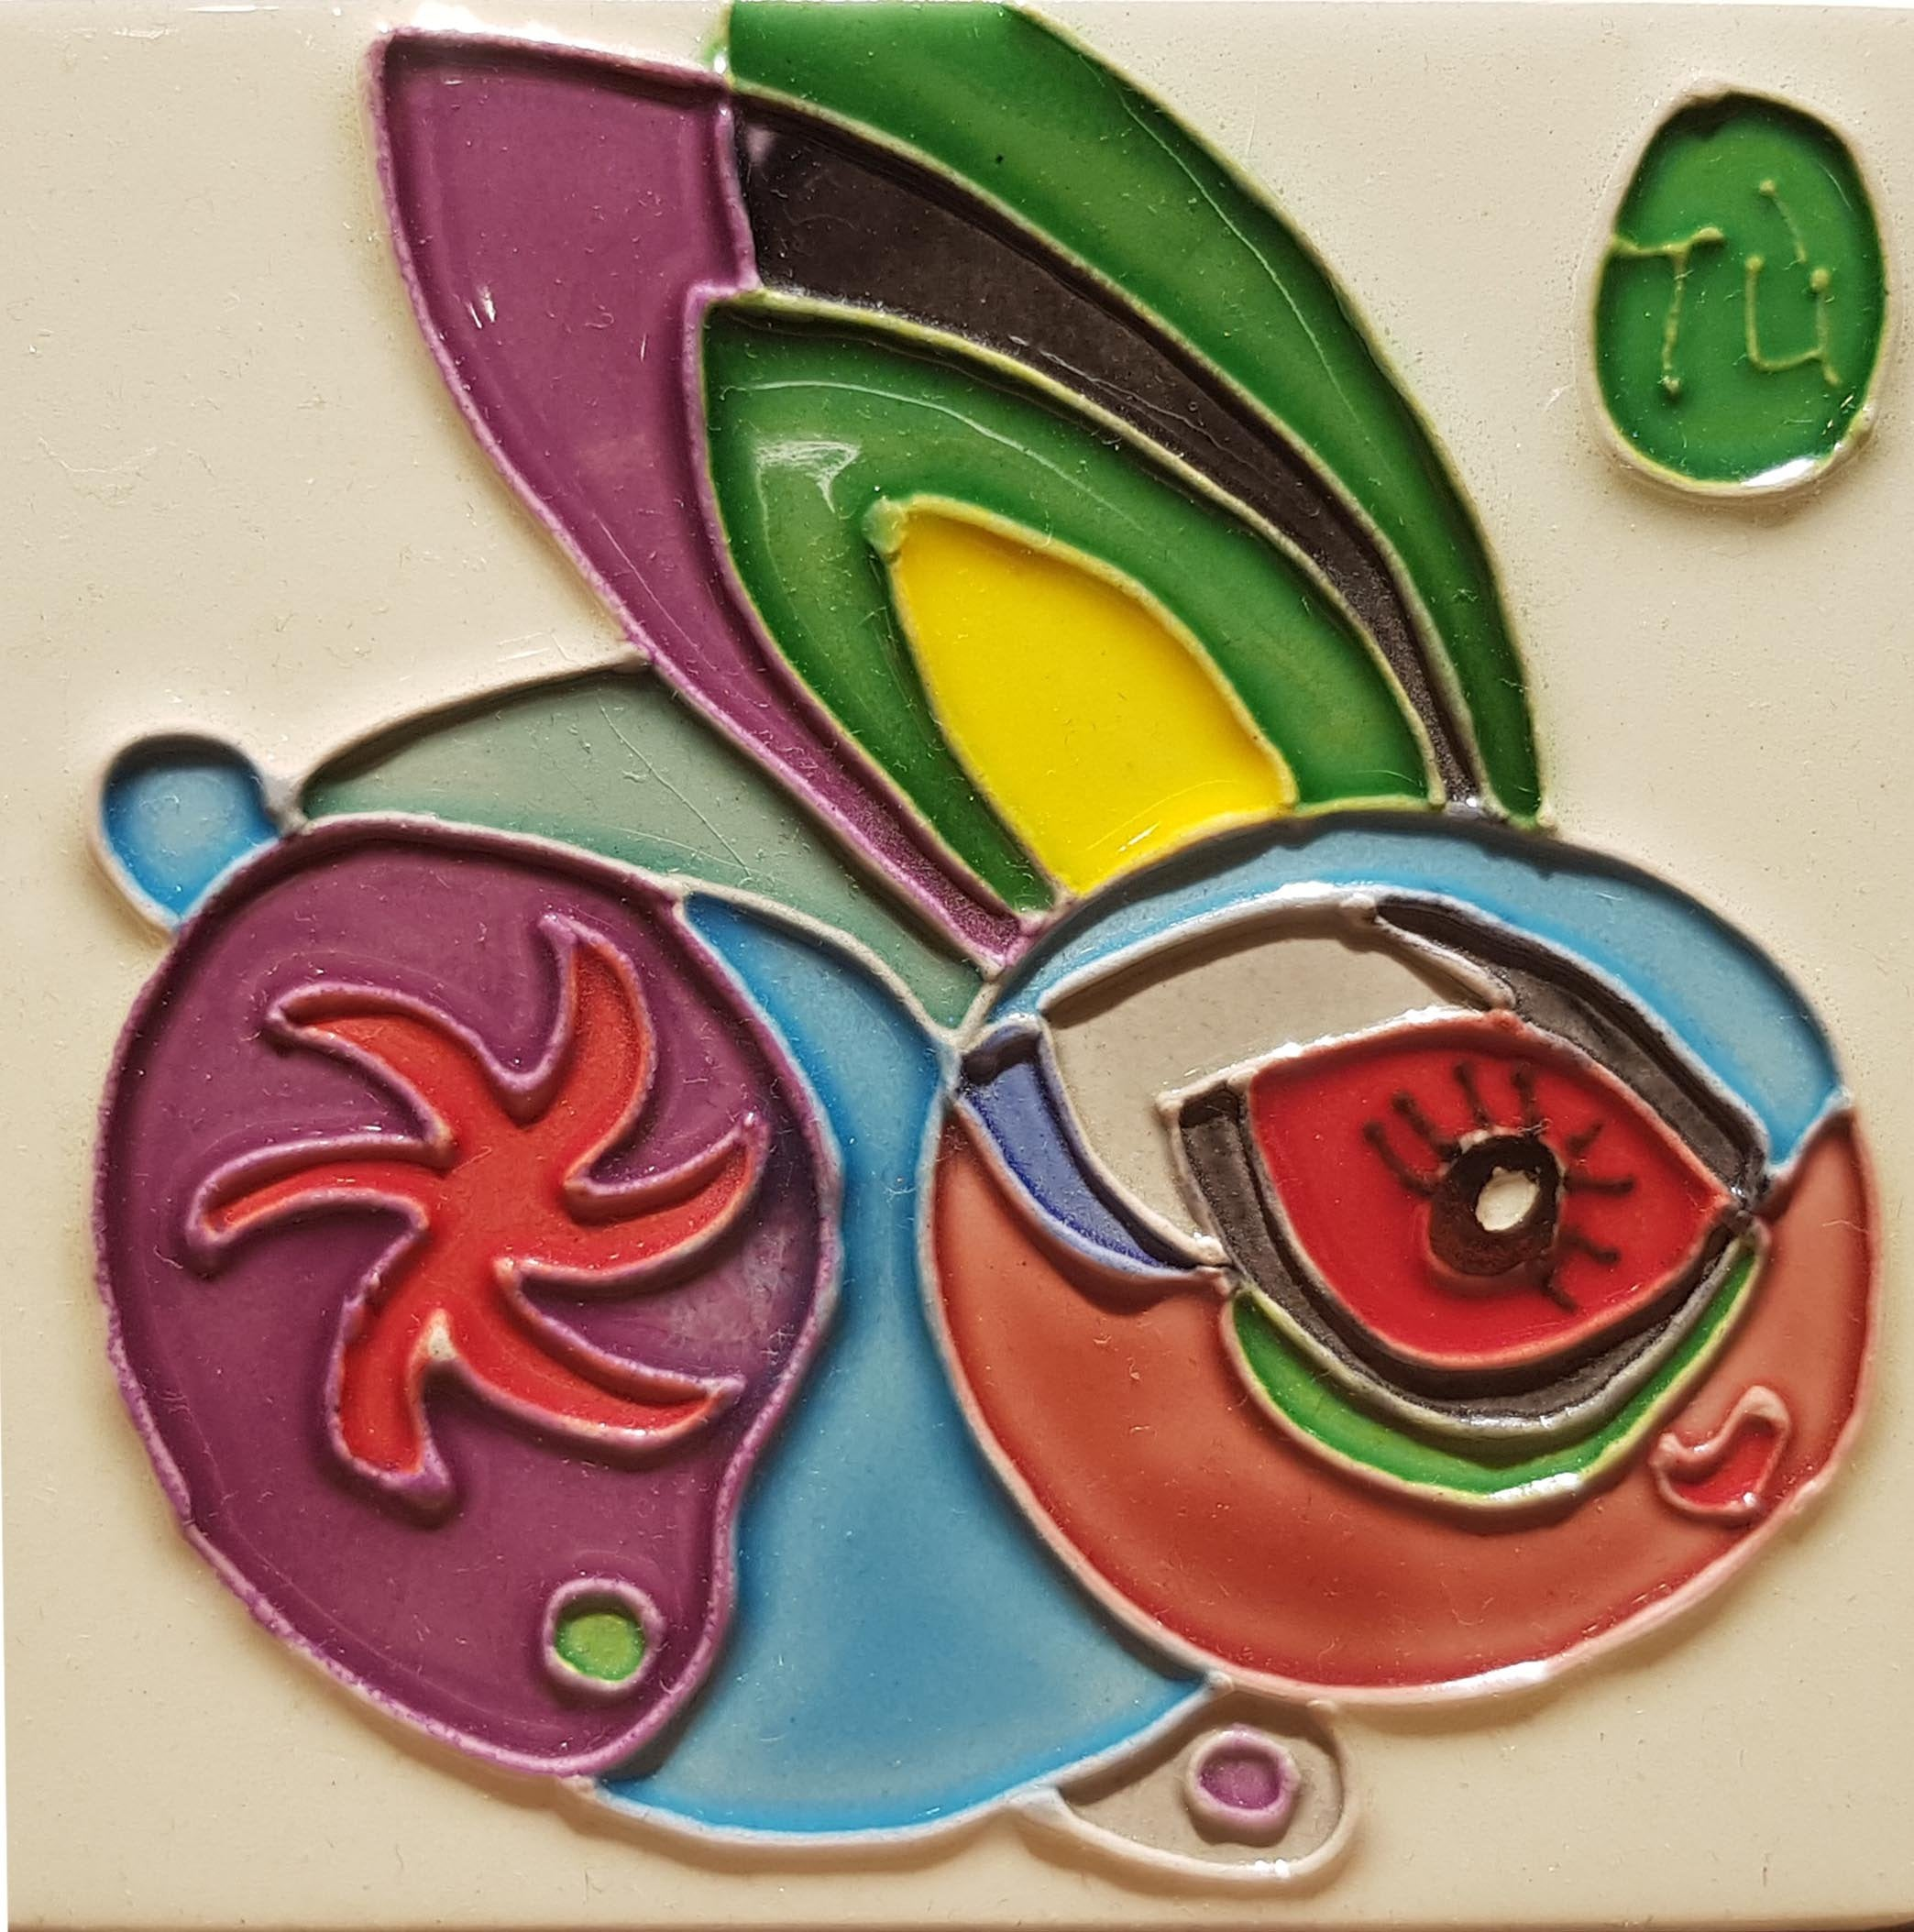 1184 Horoscope Rabbit 10cm x 10cm Ceramic Tile